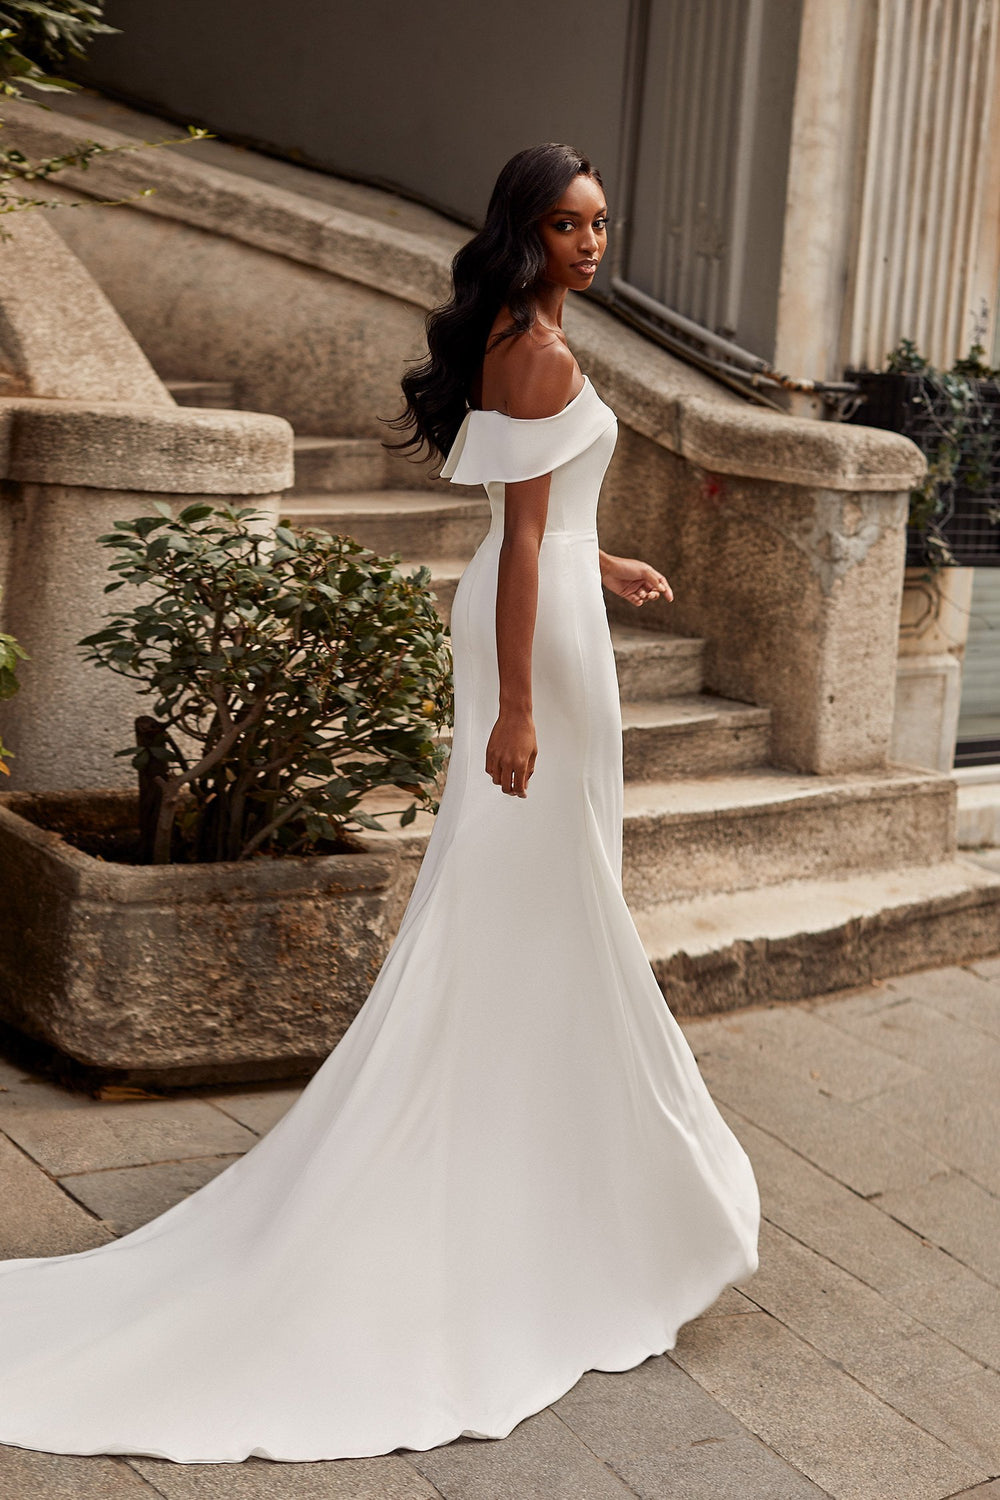 Crystal Gown - White Fitted Crepe Off-Shoulder Mermaid Gown With Train